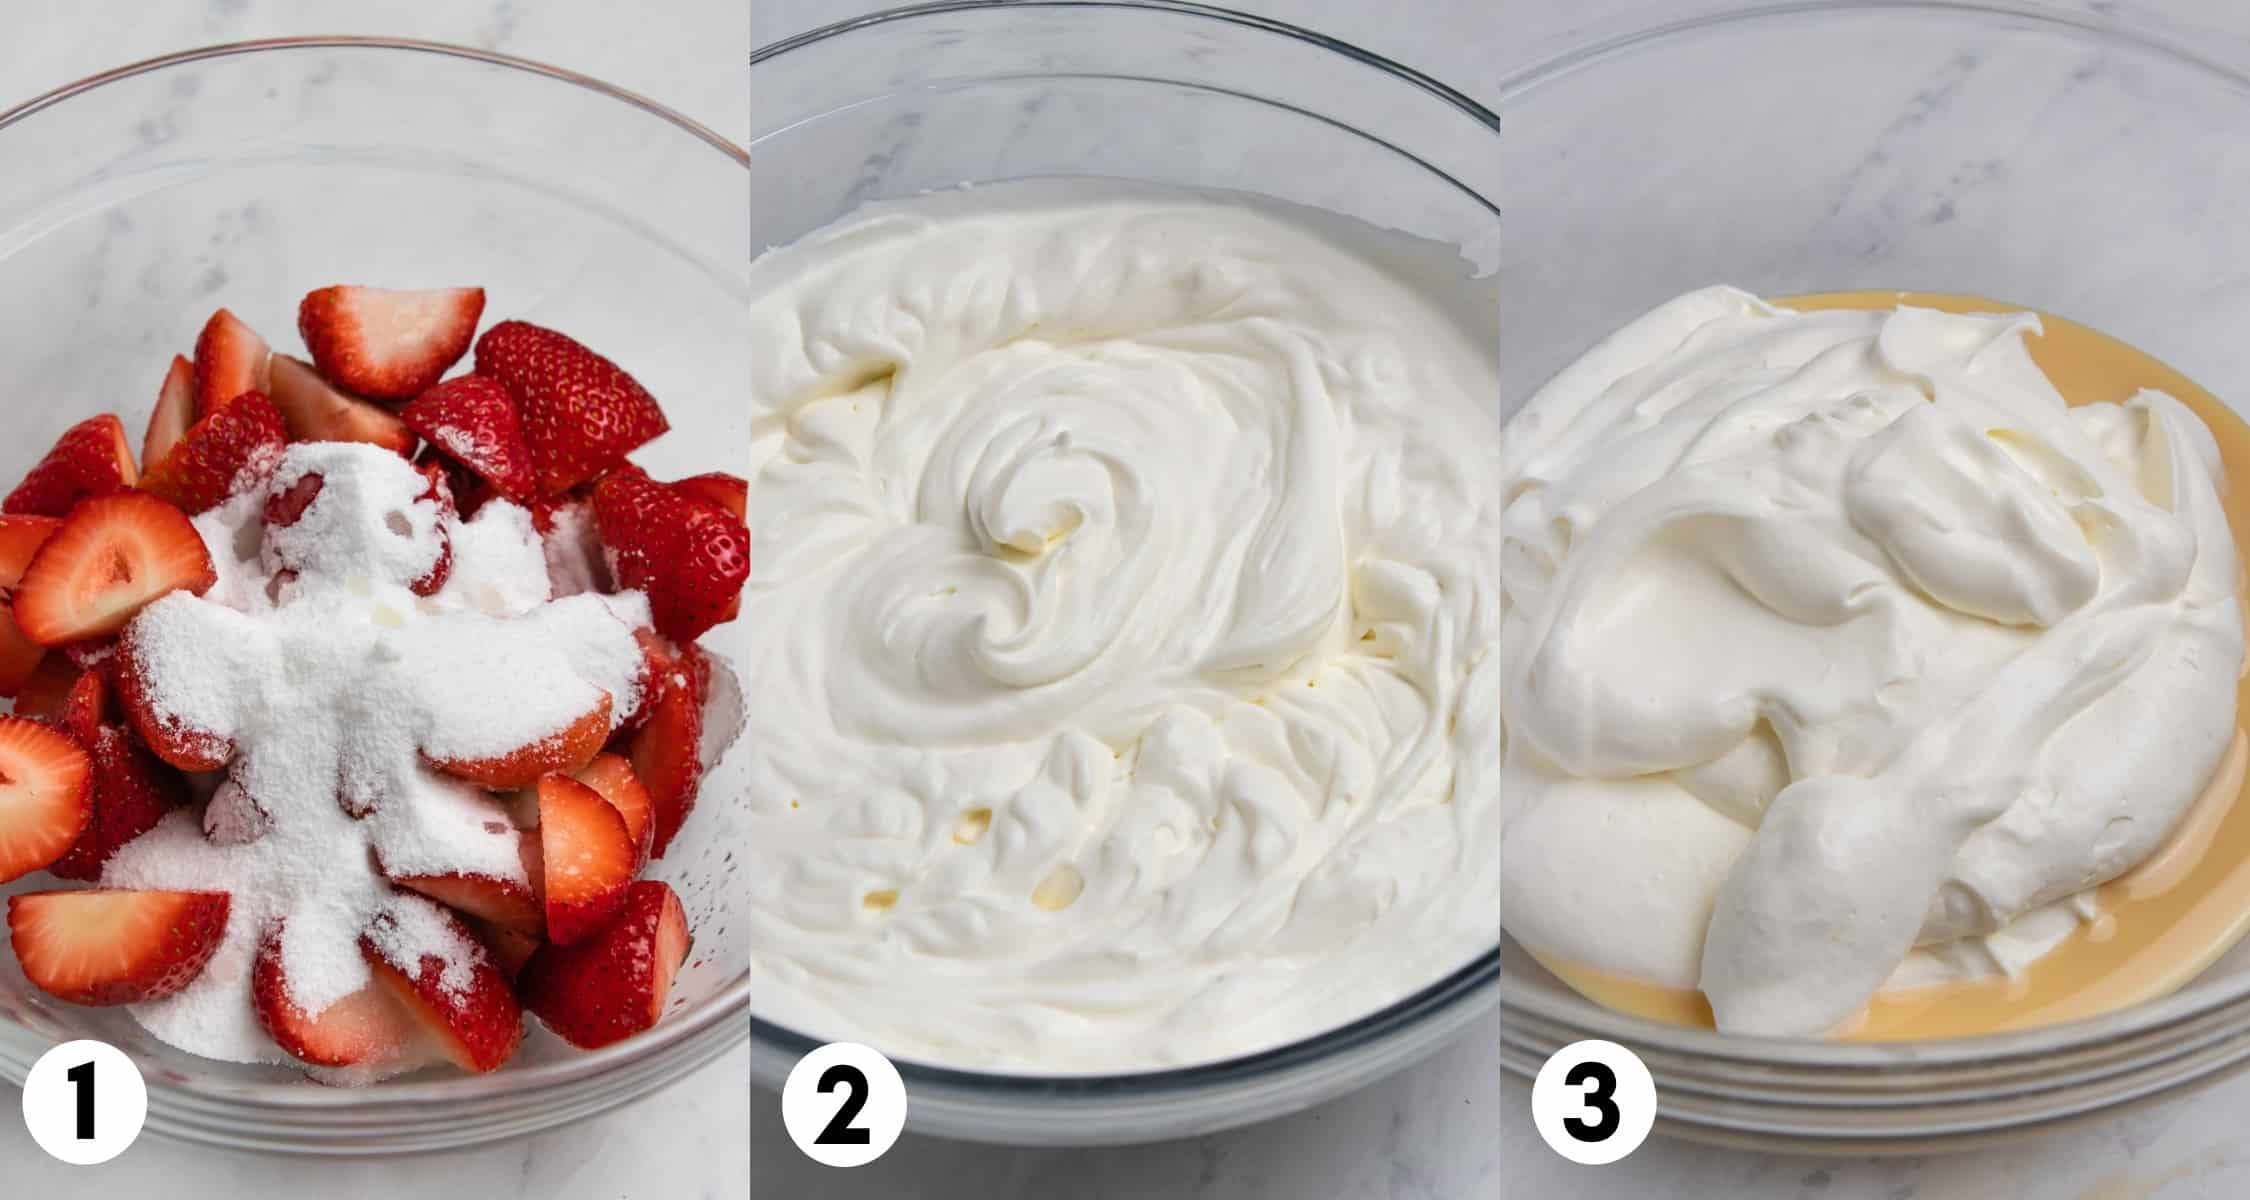 Strawberries on bowl with sugar, whipped cream in a next bowl and then added to condensed milk.